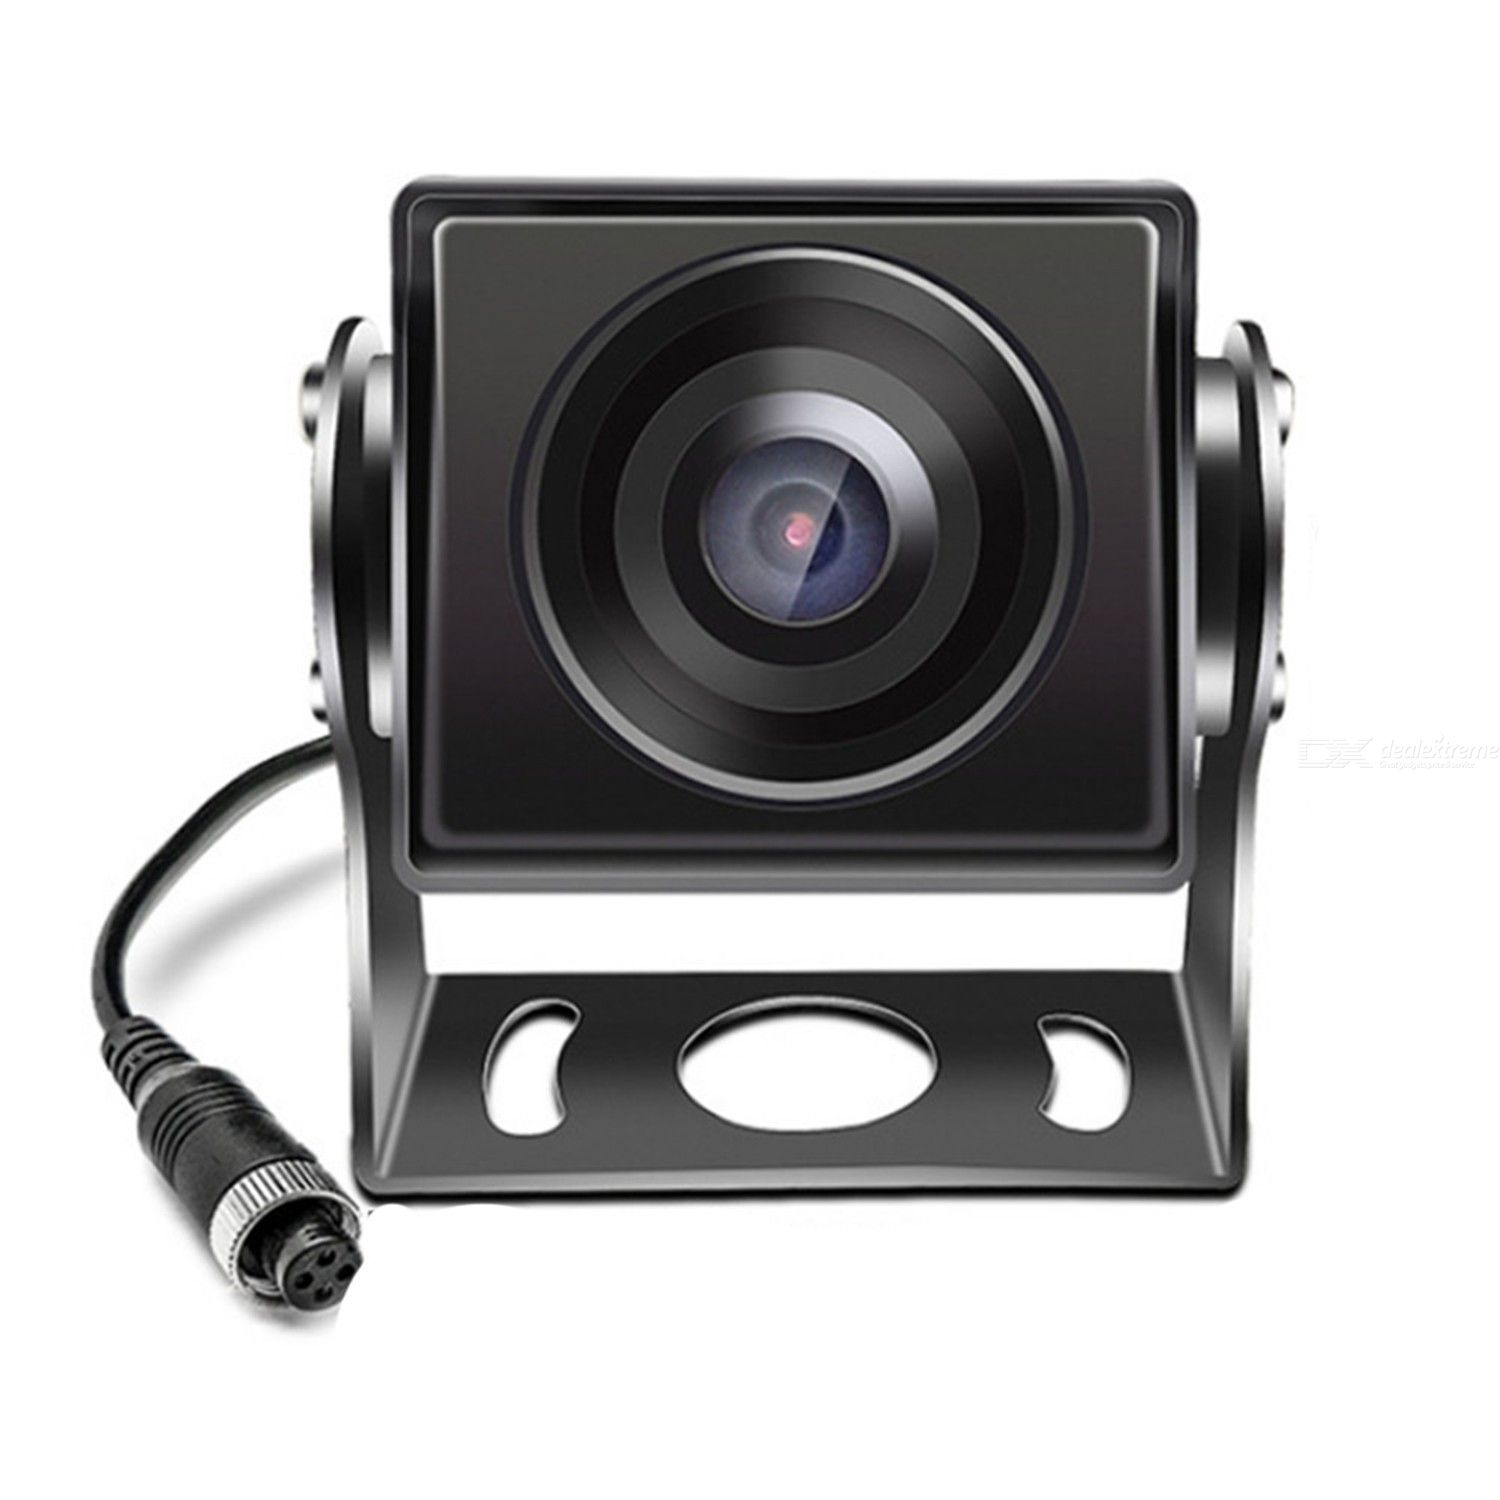 Metal minibus vehicle light free camera aviation connector bus wide voltage AHD light free full color 5m aviation line